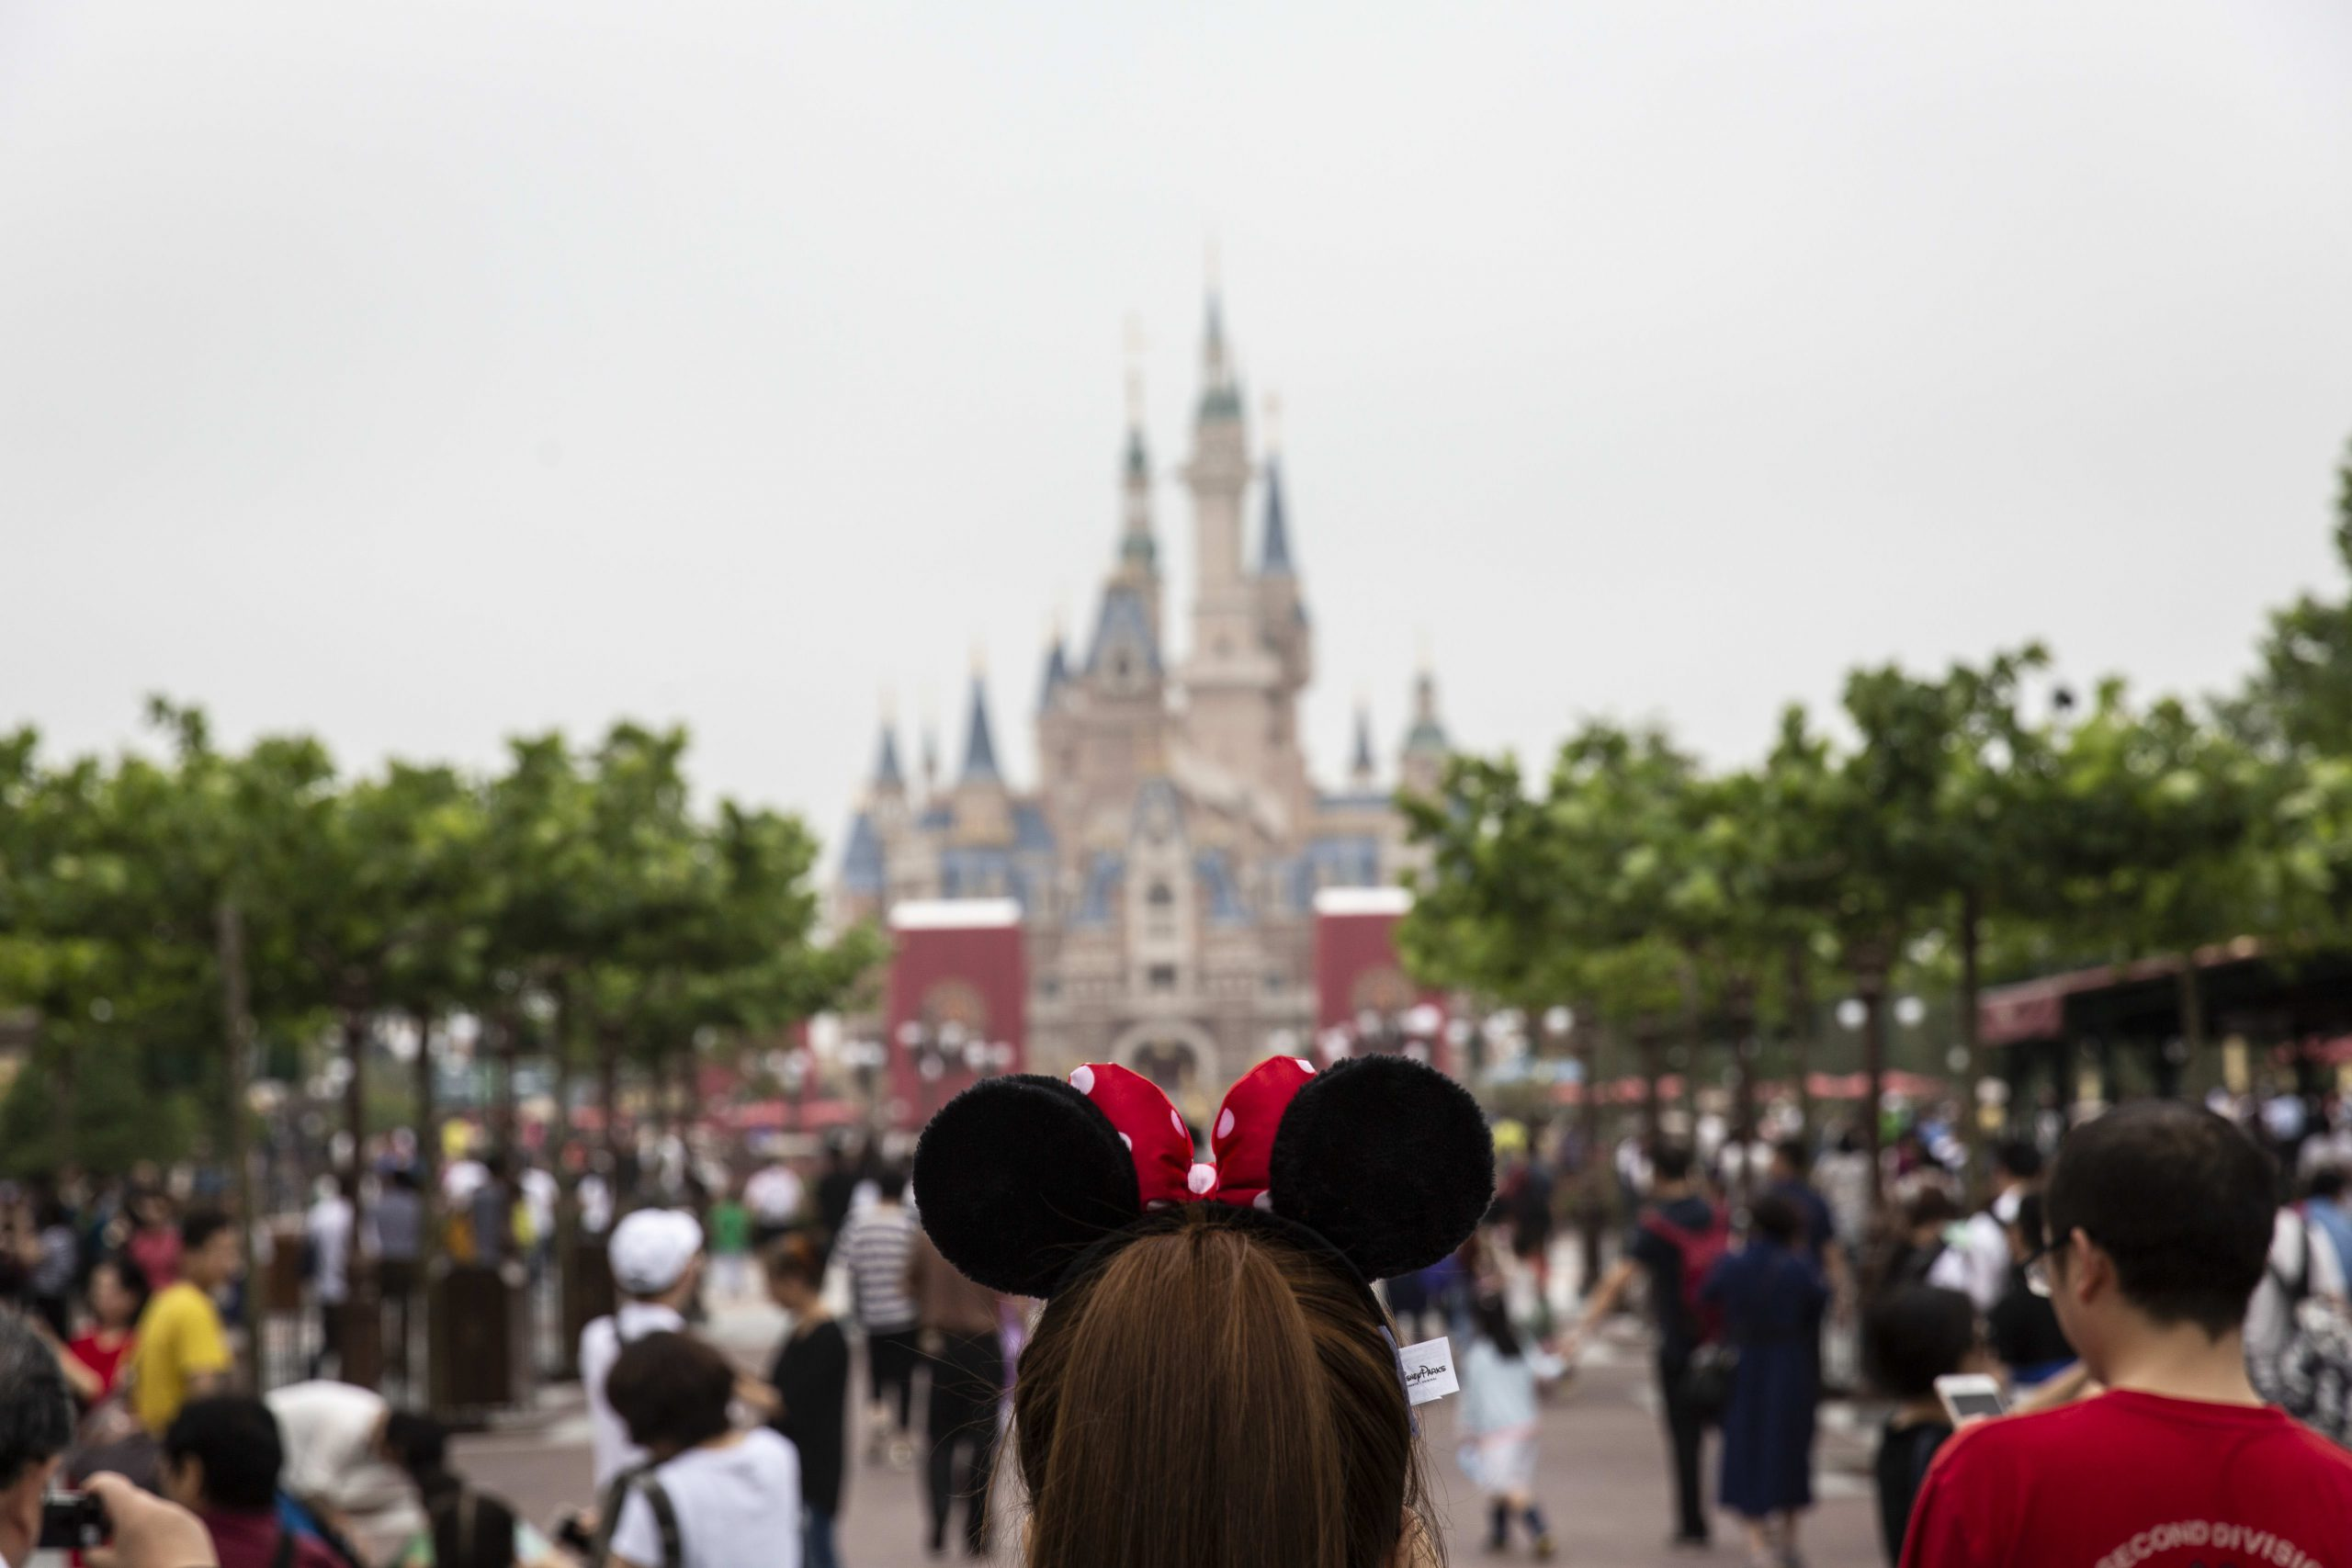 Buying Disney here as a long-term play 'makes sense to me,' Jim Cramer says